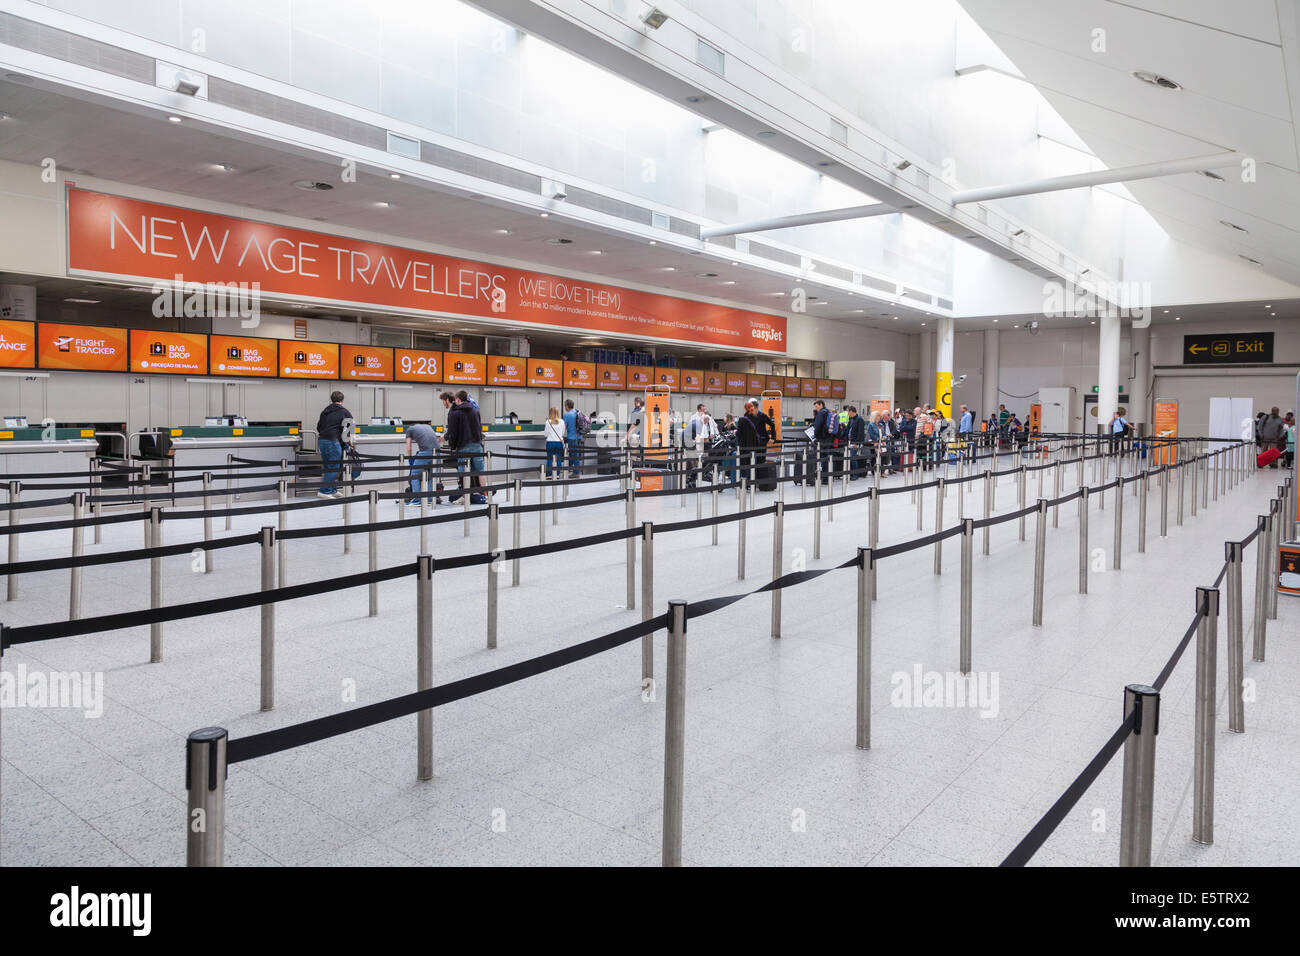 Almost empty check in area for Easyjet flights. - Stock Image